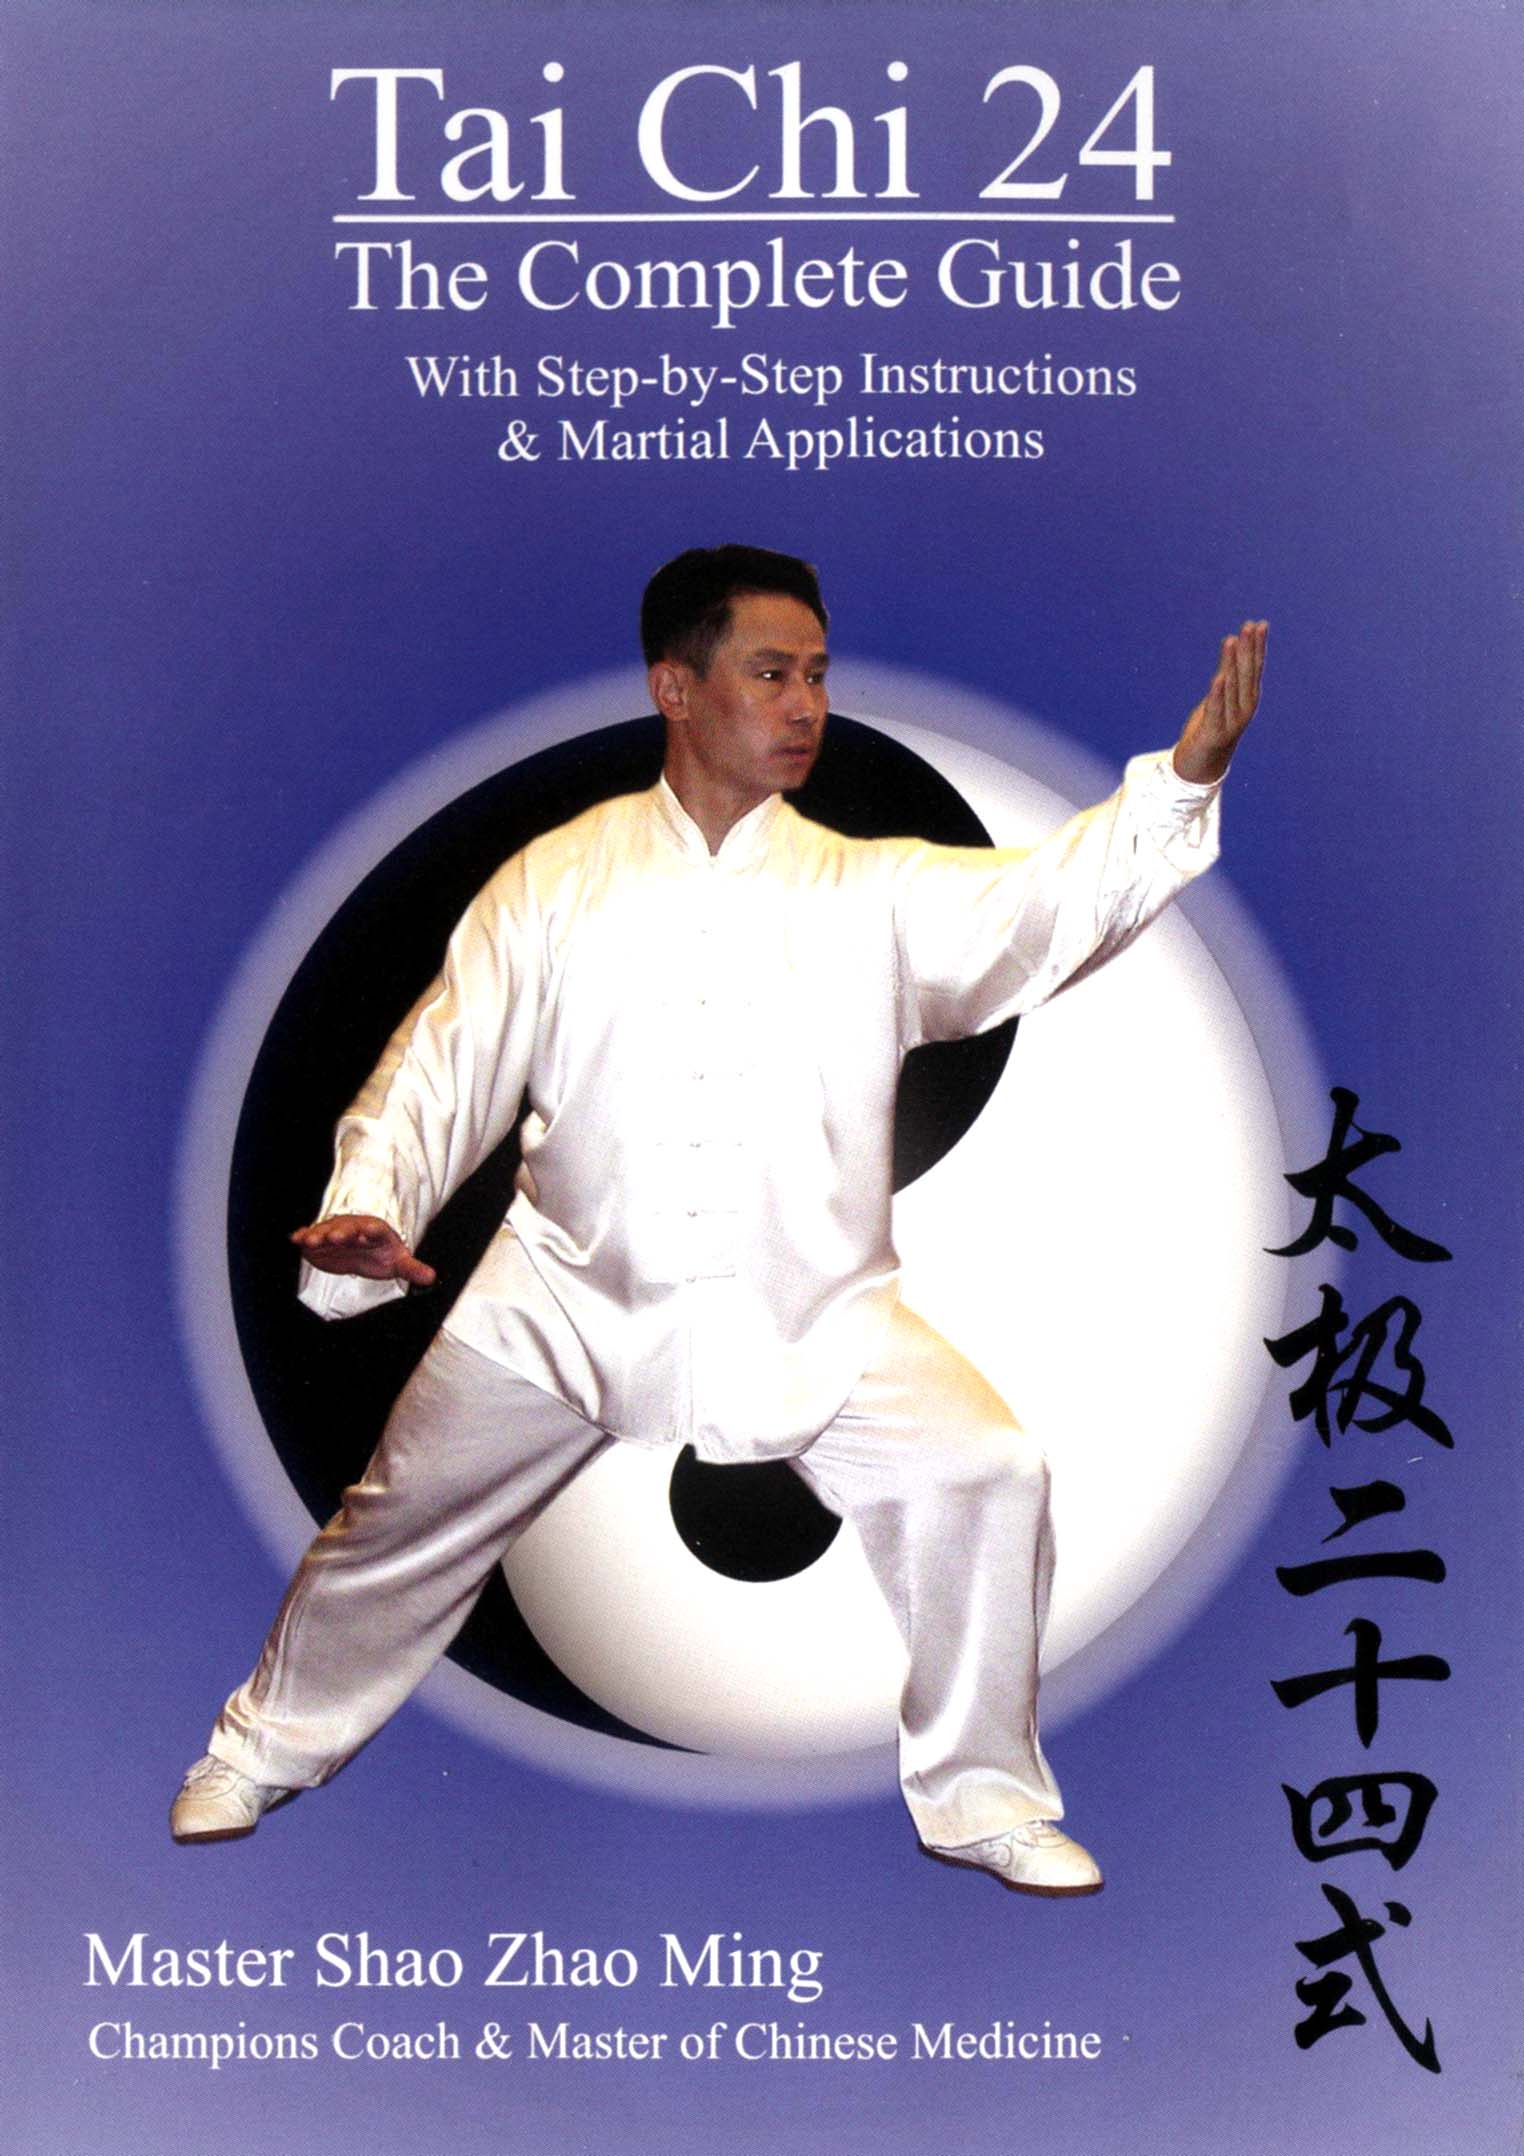 Tai Chi 24 Form: The Complete Guide